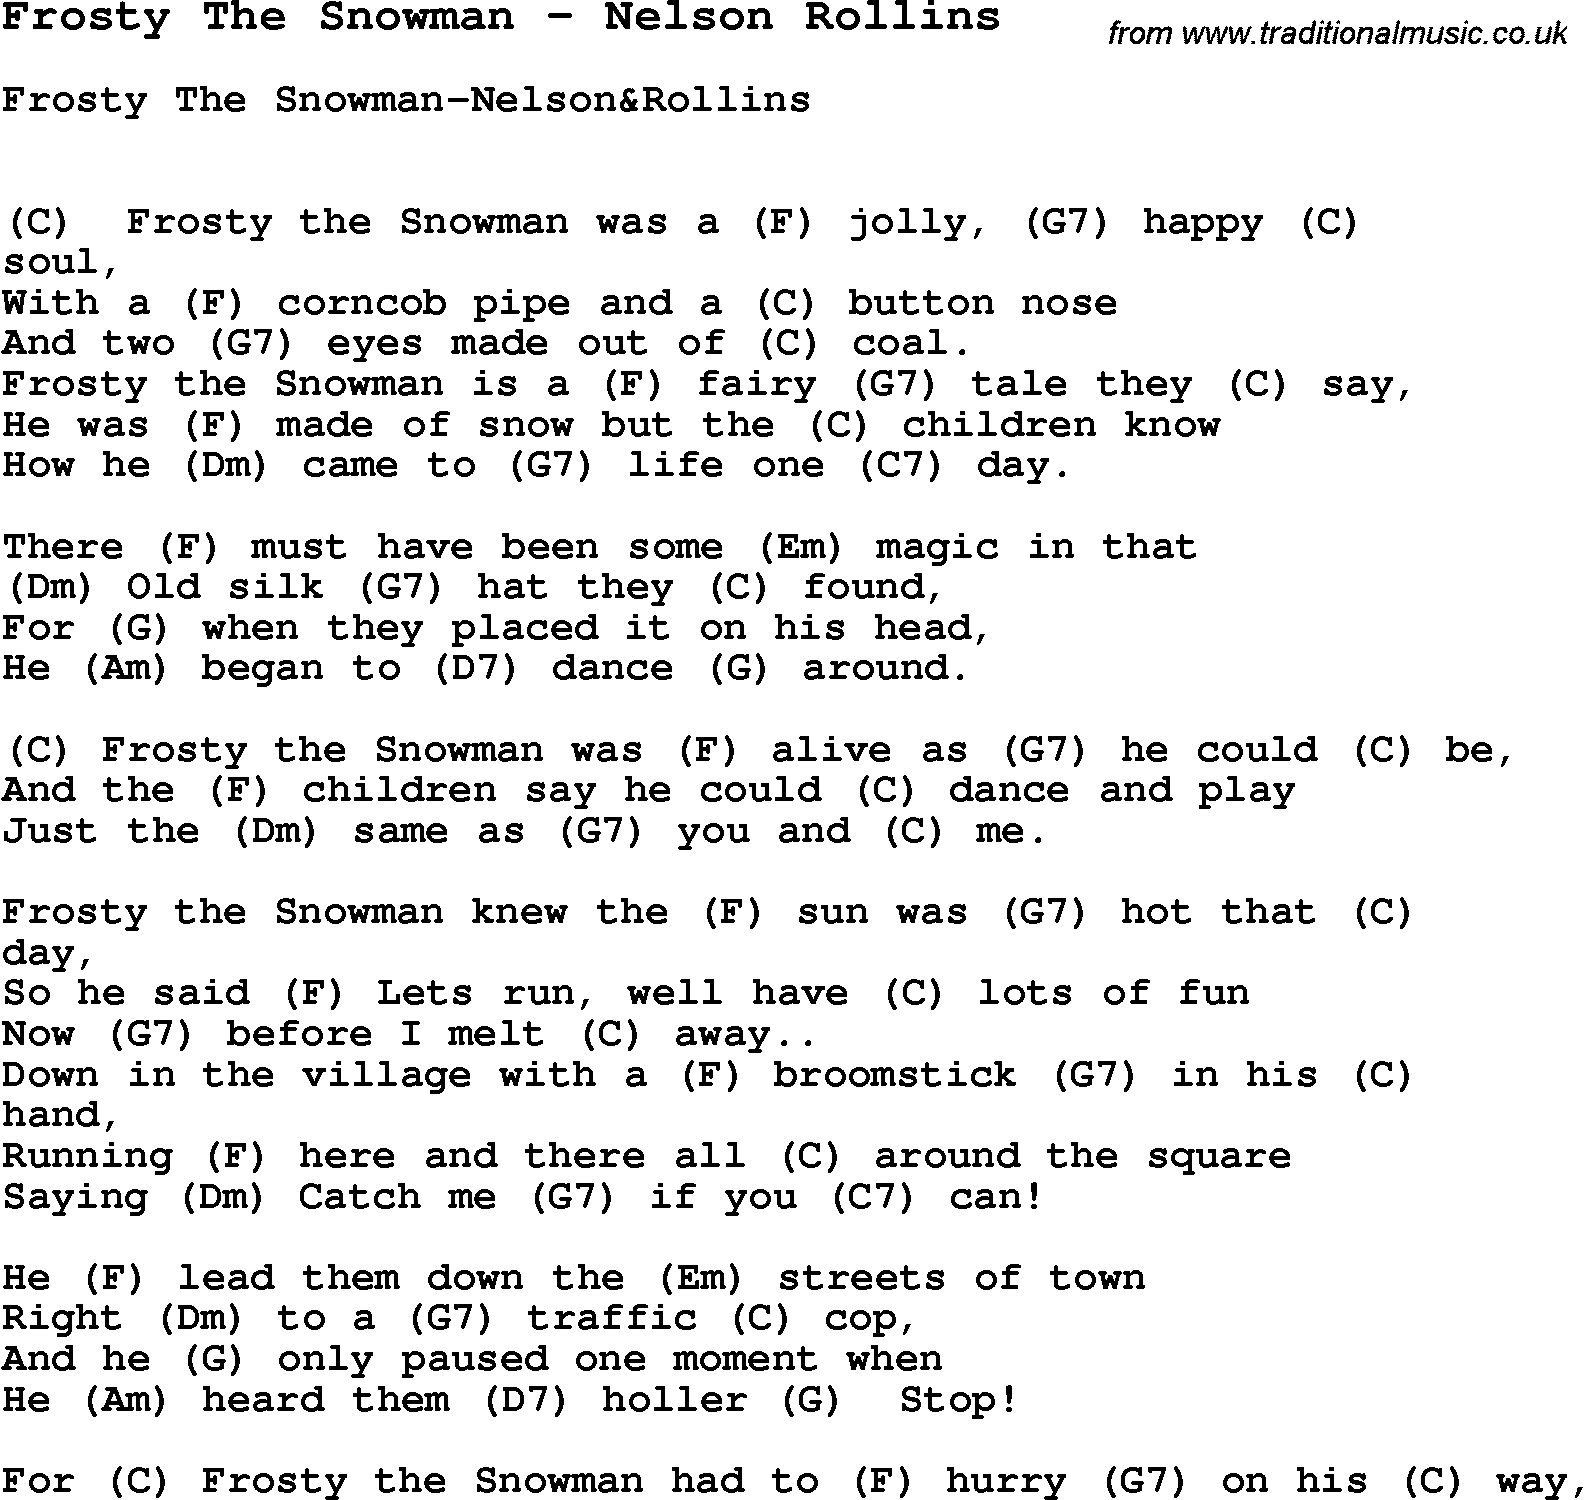 song frosty the snowman by nelson rollins song lyric for vocal